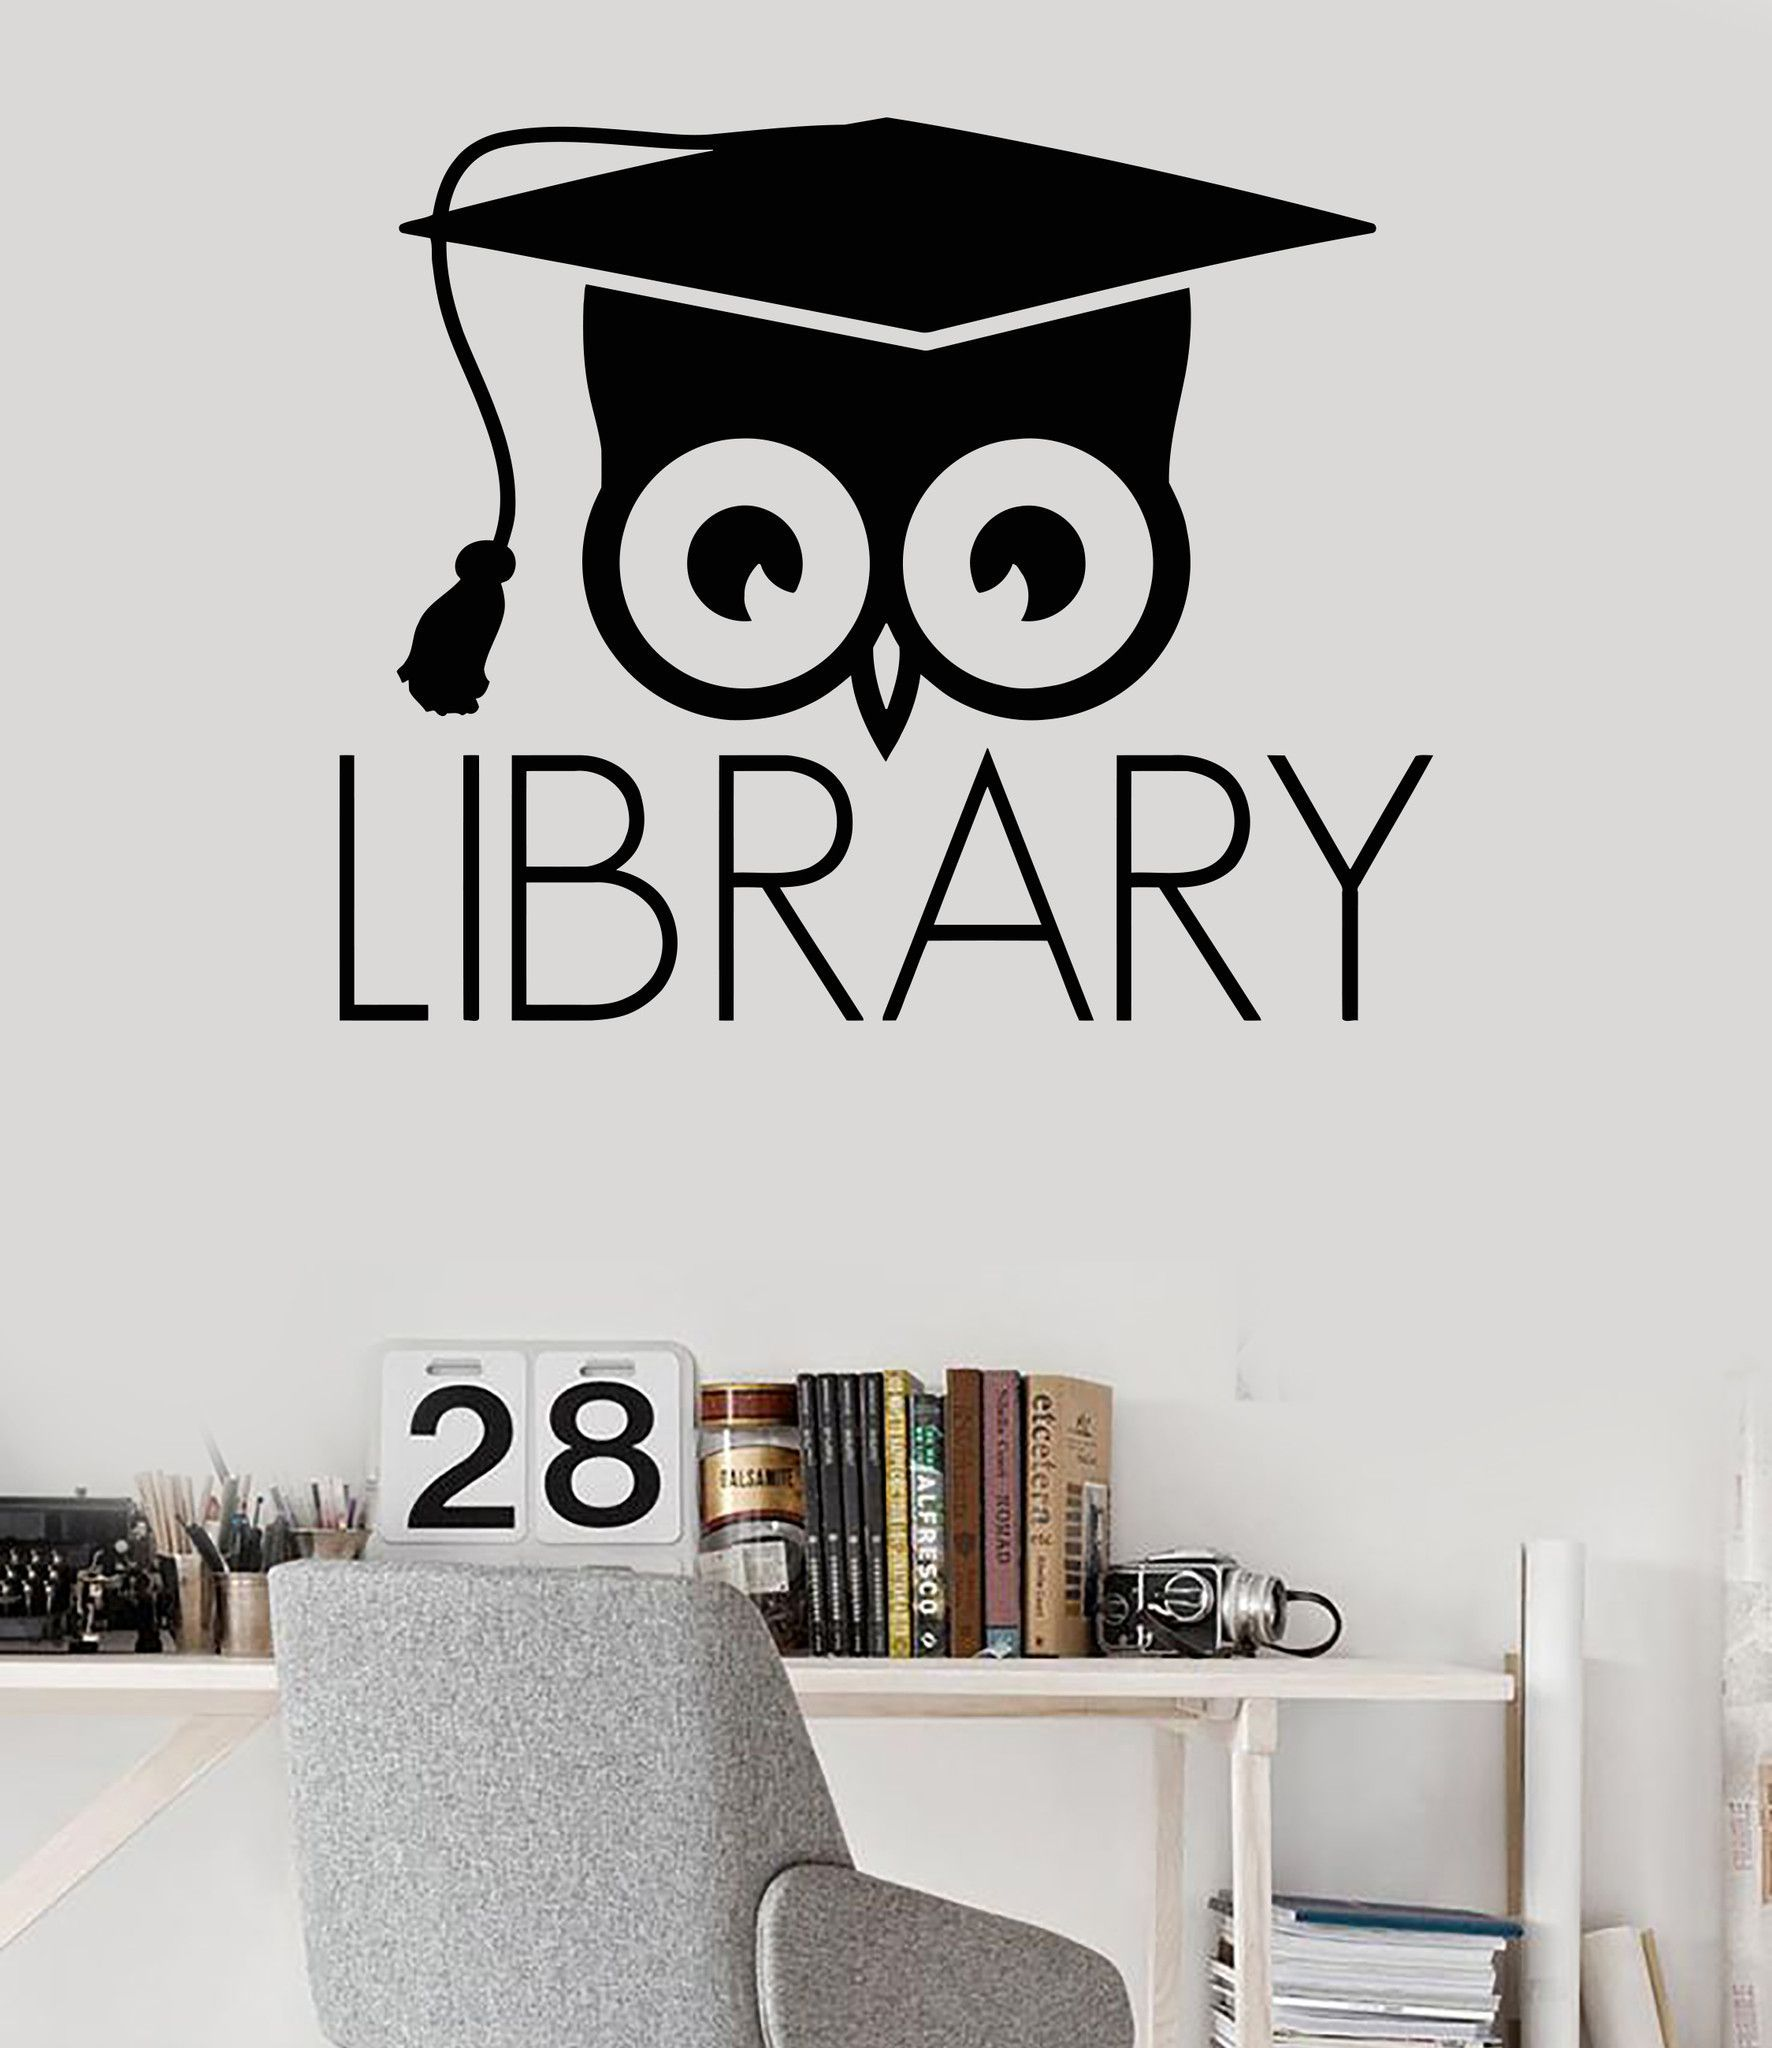 vinyl wall decal library books bookworm academic owl scientific stickers mural 320ig - Stickers Muraux Design Decoration